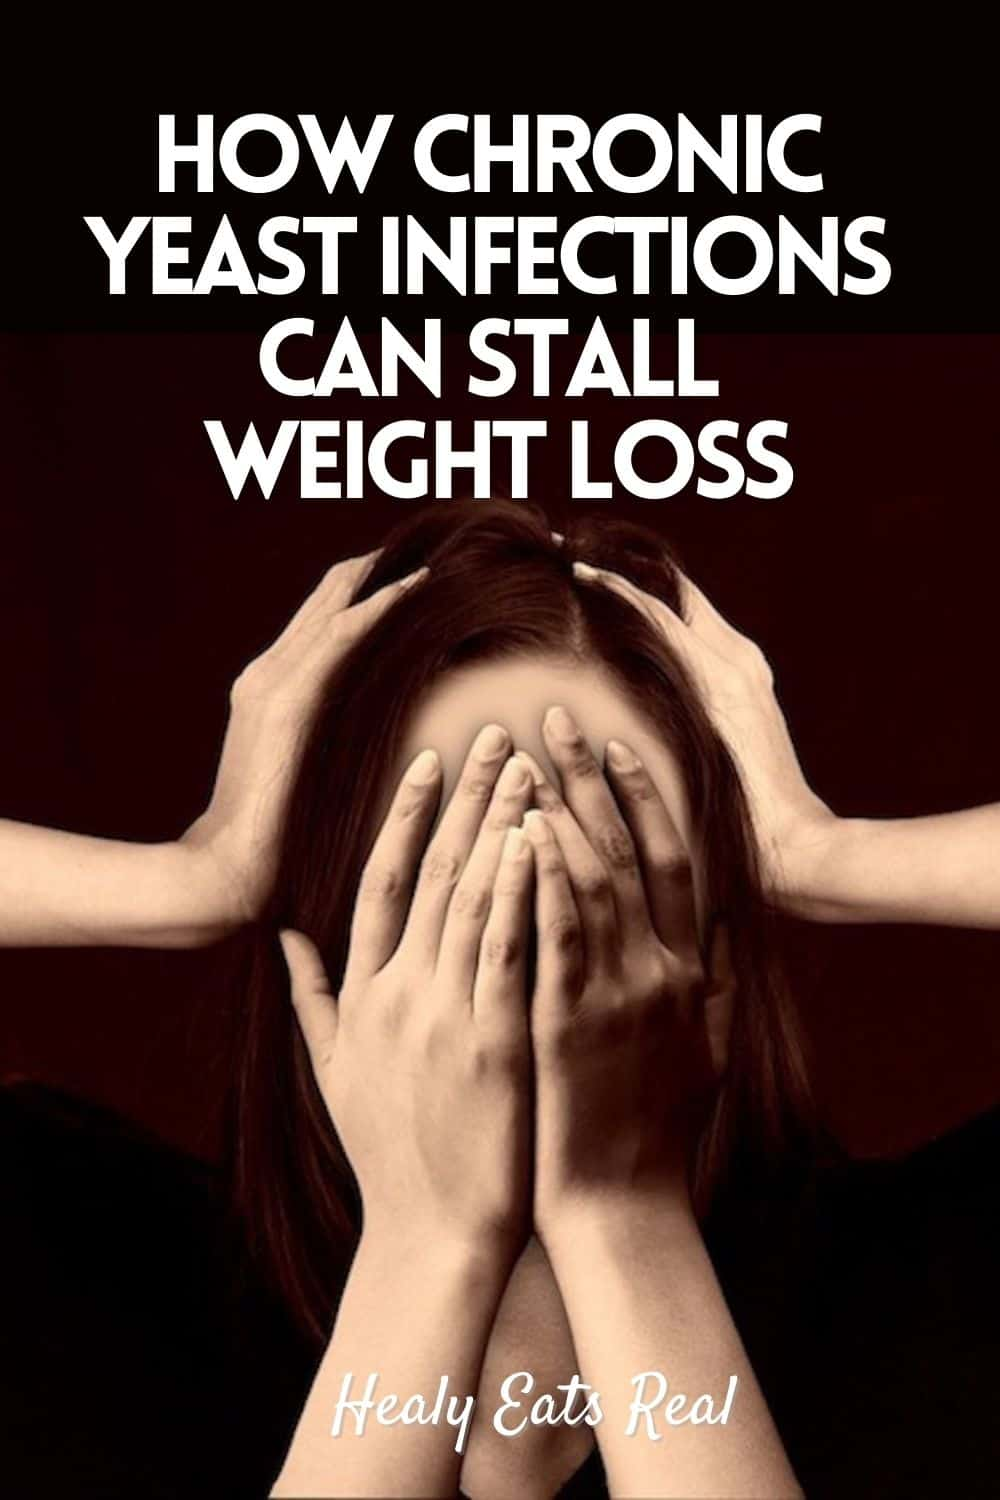 How Yeast Infections Can Stall Weight Loss